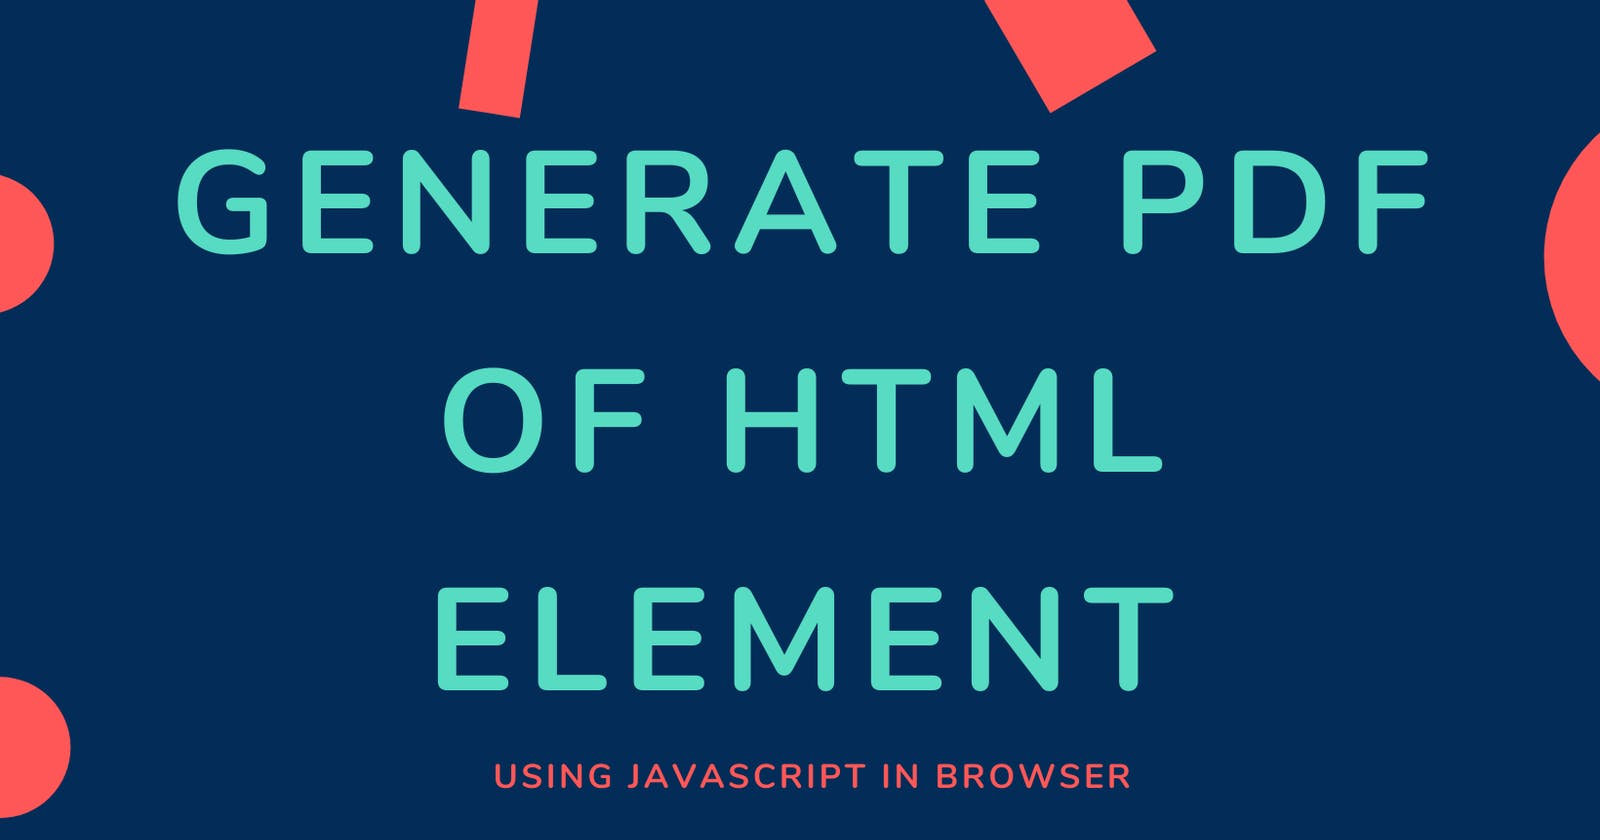 Generate PDF of HTML Element in Browser